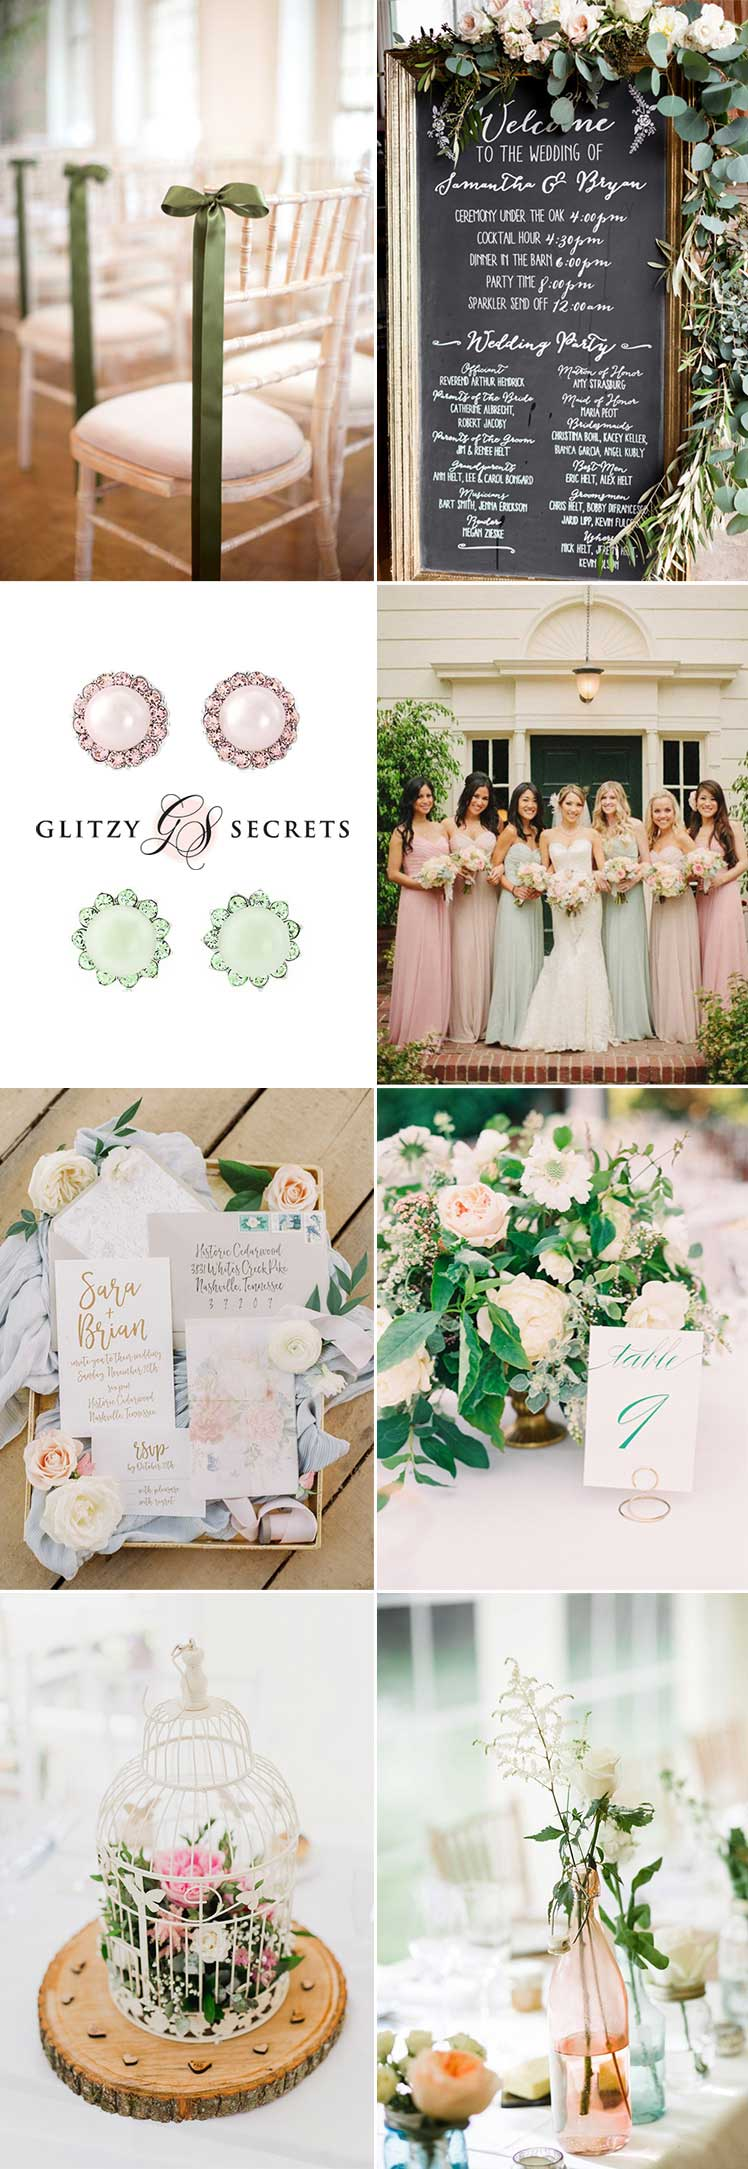 pink and green themed wedding